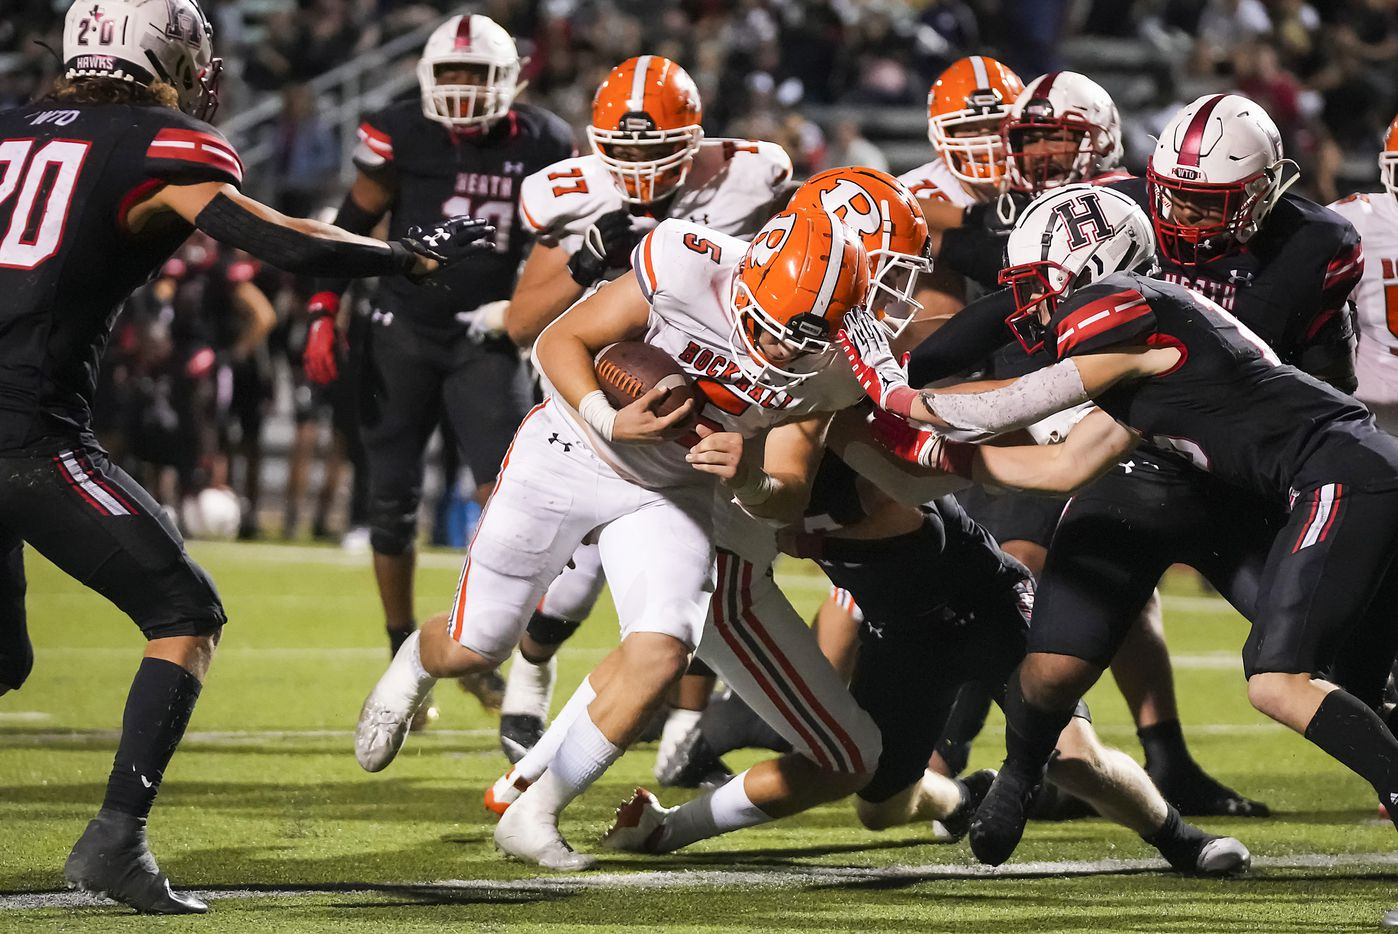 Rockwall quarterback Lake Bennett (5) scores on a 3-yard run during overtime in a District 10-6A high school football game against Rockwall-Heath at Wilkerson-Sanders Stadium on Friday, Sept. 24, 2021, in Rockwall.  Rockwall-Heath won the game 79-71 in double overtime.